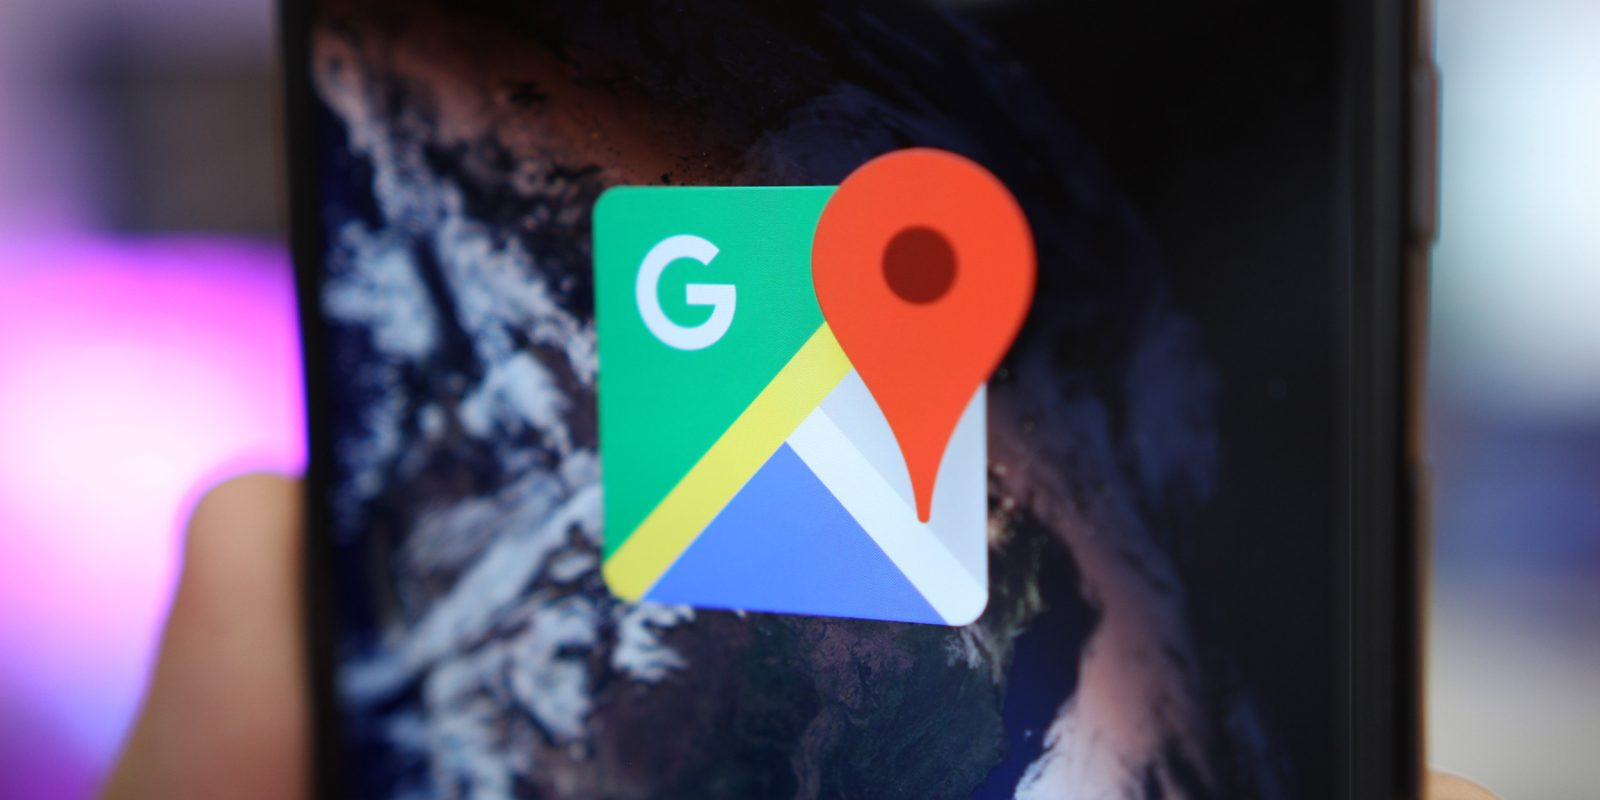 Google Maps will now show you how much traffic to expect on ... on android maps, ipad maps, stanford university maps, waze maps, search maps, msn maps, online maps, goolge maps, aeronautical maps, microsoft maps, gppgle maps, googie maps, googlr maps, iphone maps, amazon fire phone maps, gogole maps, topographic maps, aerial maps, bing maps, road map usa states maps,